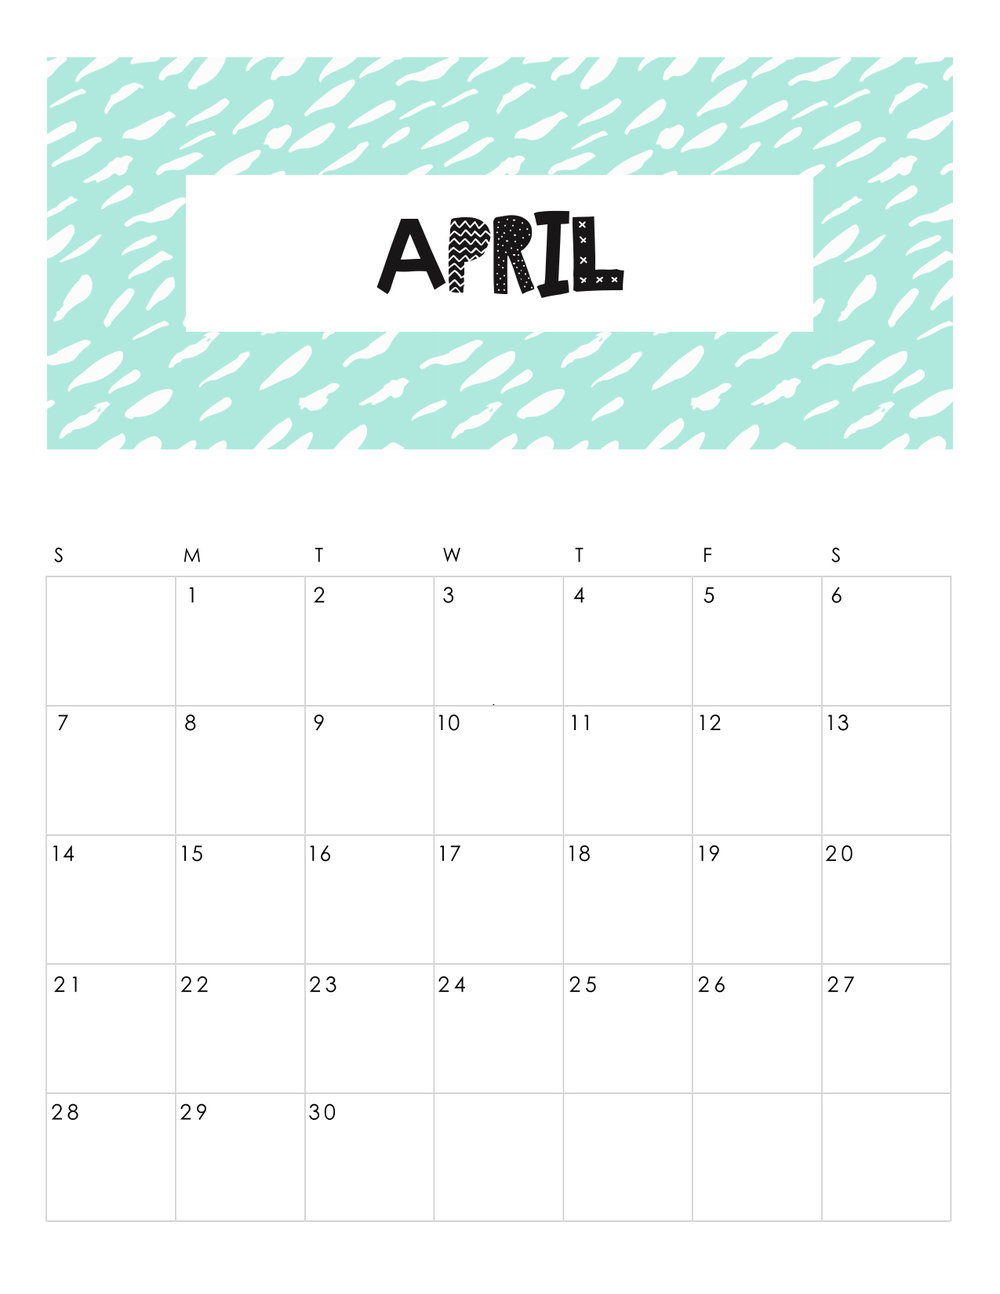 free-printable-abstract-patterned-calendar-april-2019.jpg